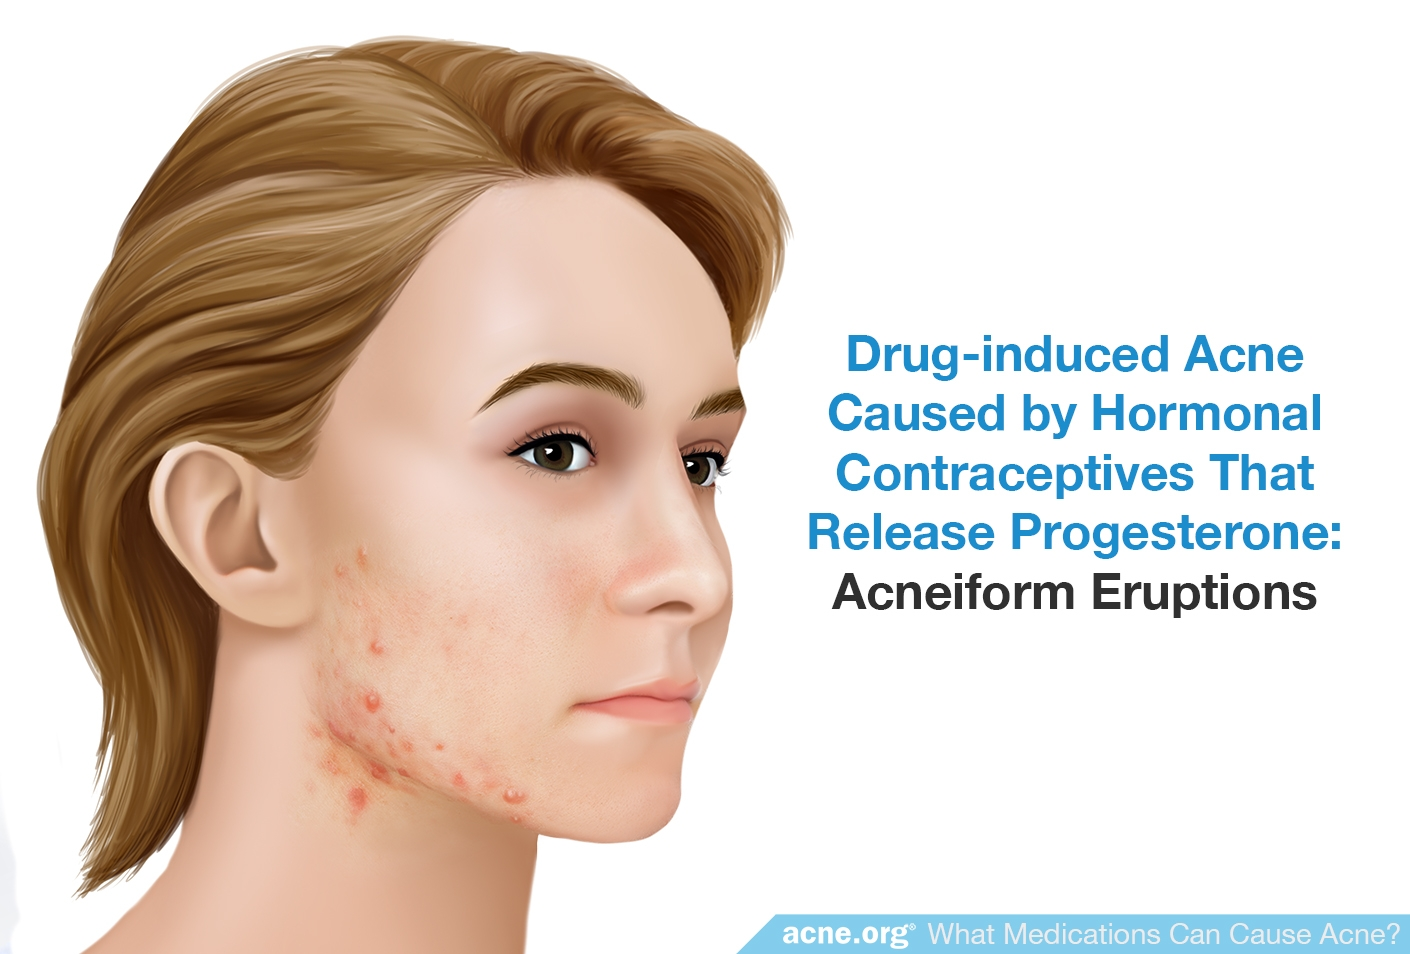 Drug-induced Acne Caused by Hormonal Contraceptives that Release Progesterone